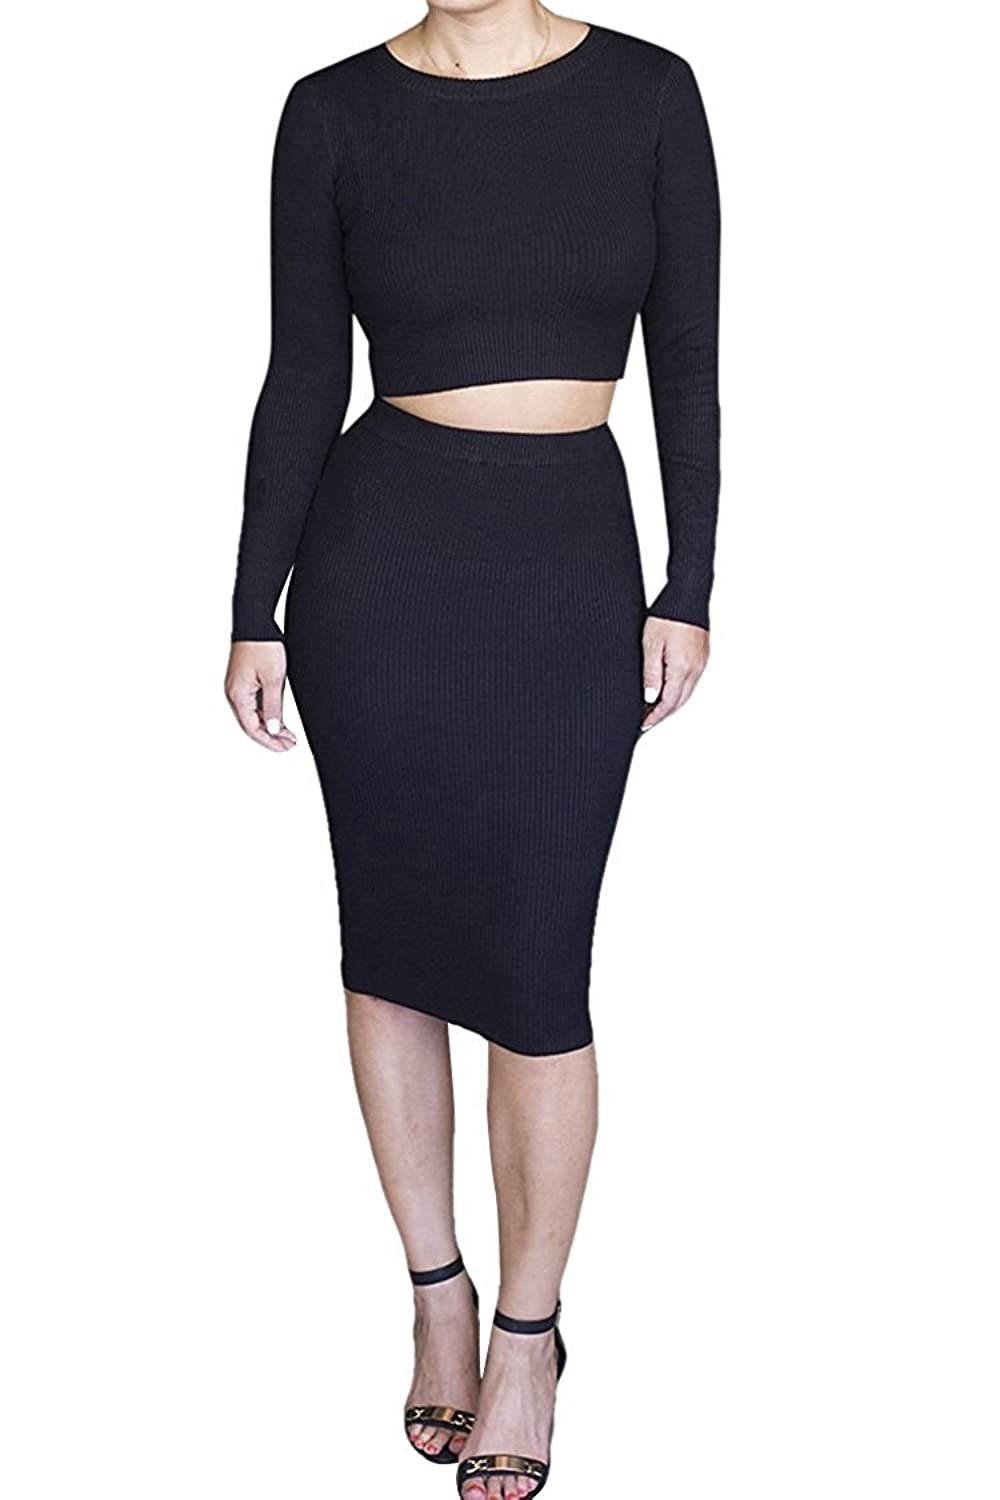 YiYaYo Womens Long Sleeve Crop Top Midi Skirt Outfit Two Pieces Bodycon Dress